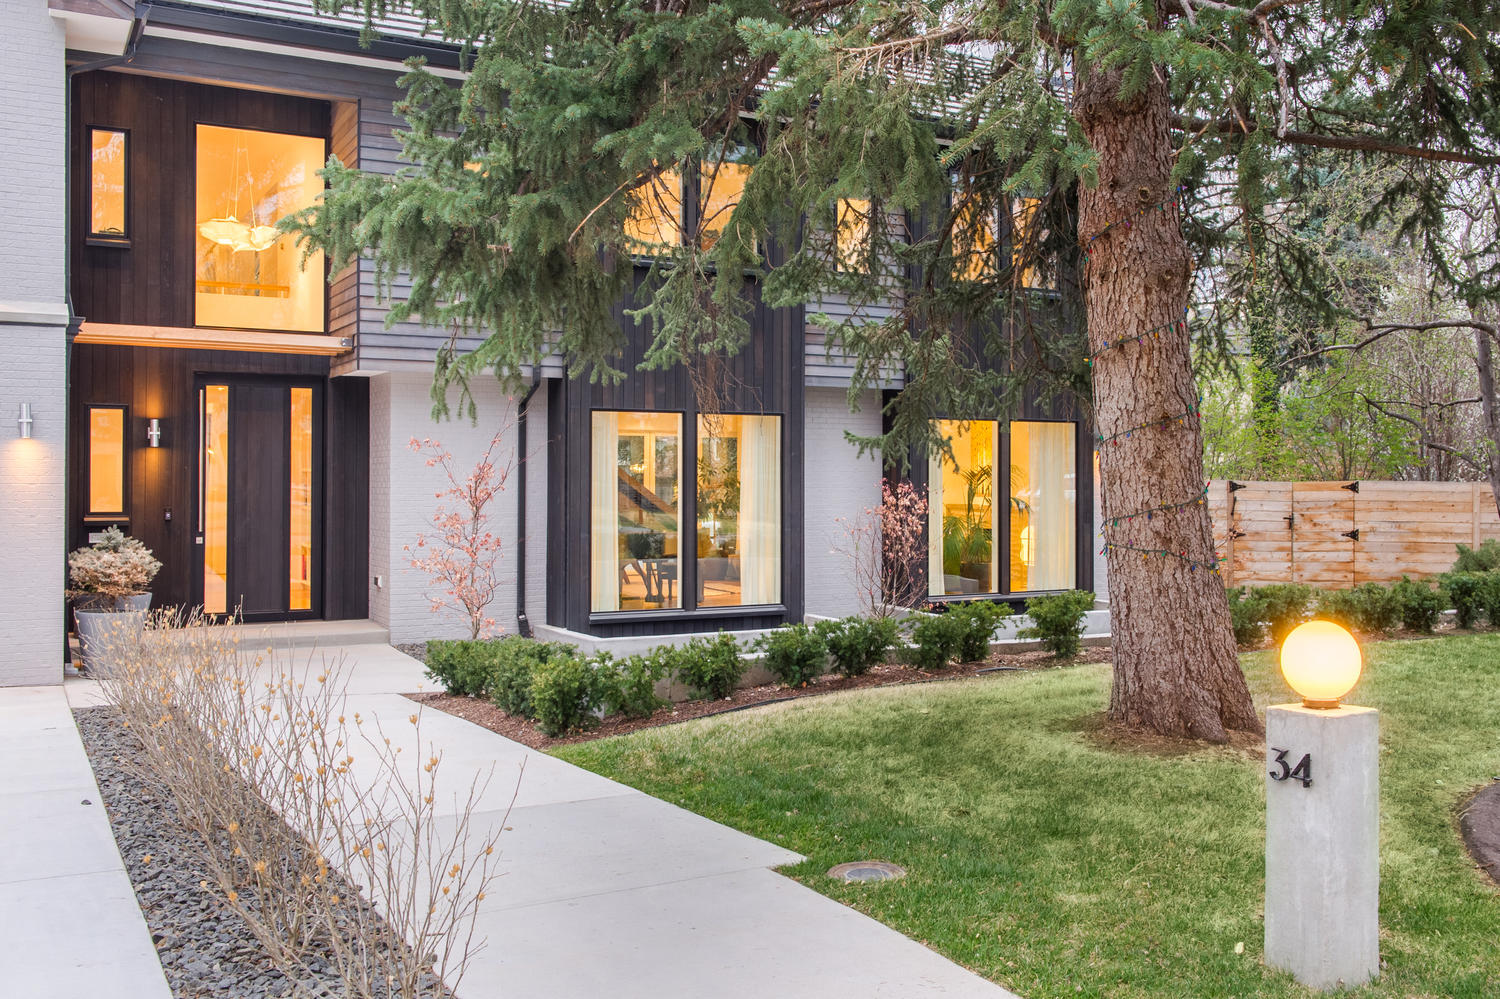 Additional photo for property listing at Remarkable Residence in Polo Club 34 Polo Club Circle Denver, Colorado 80209 United States